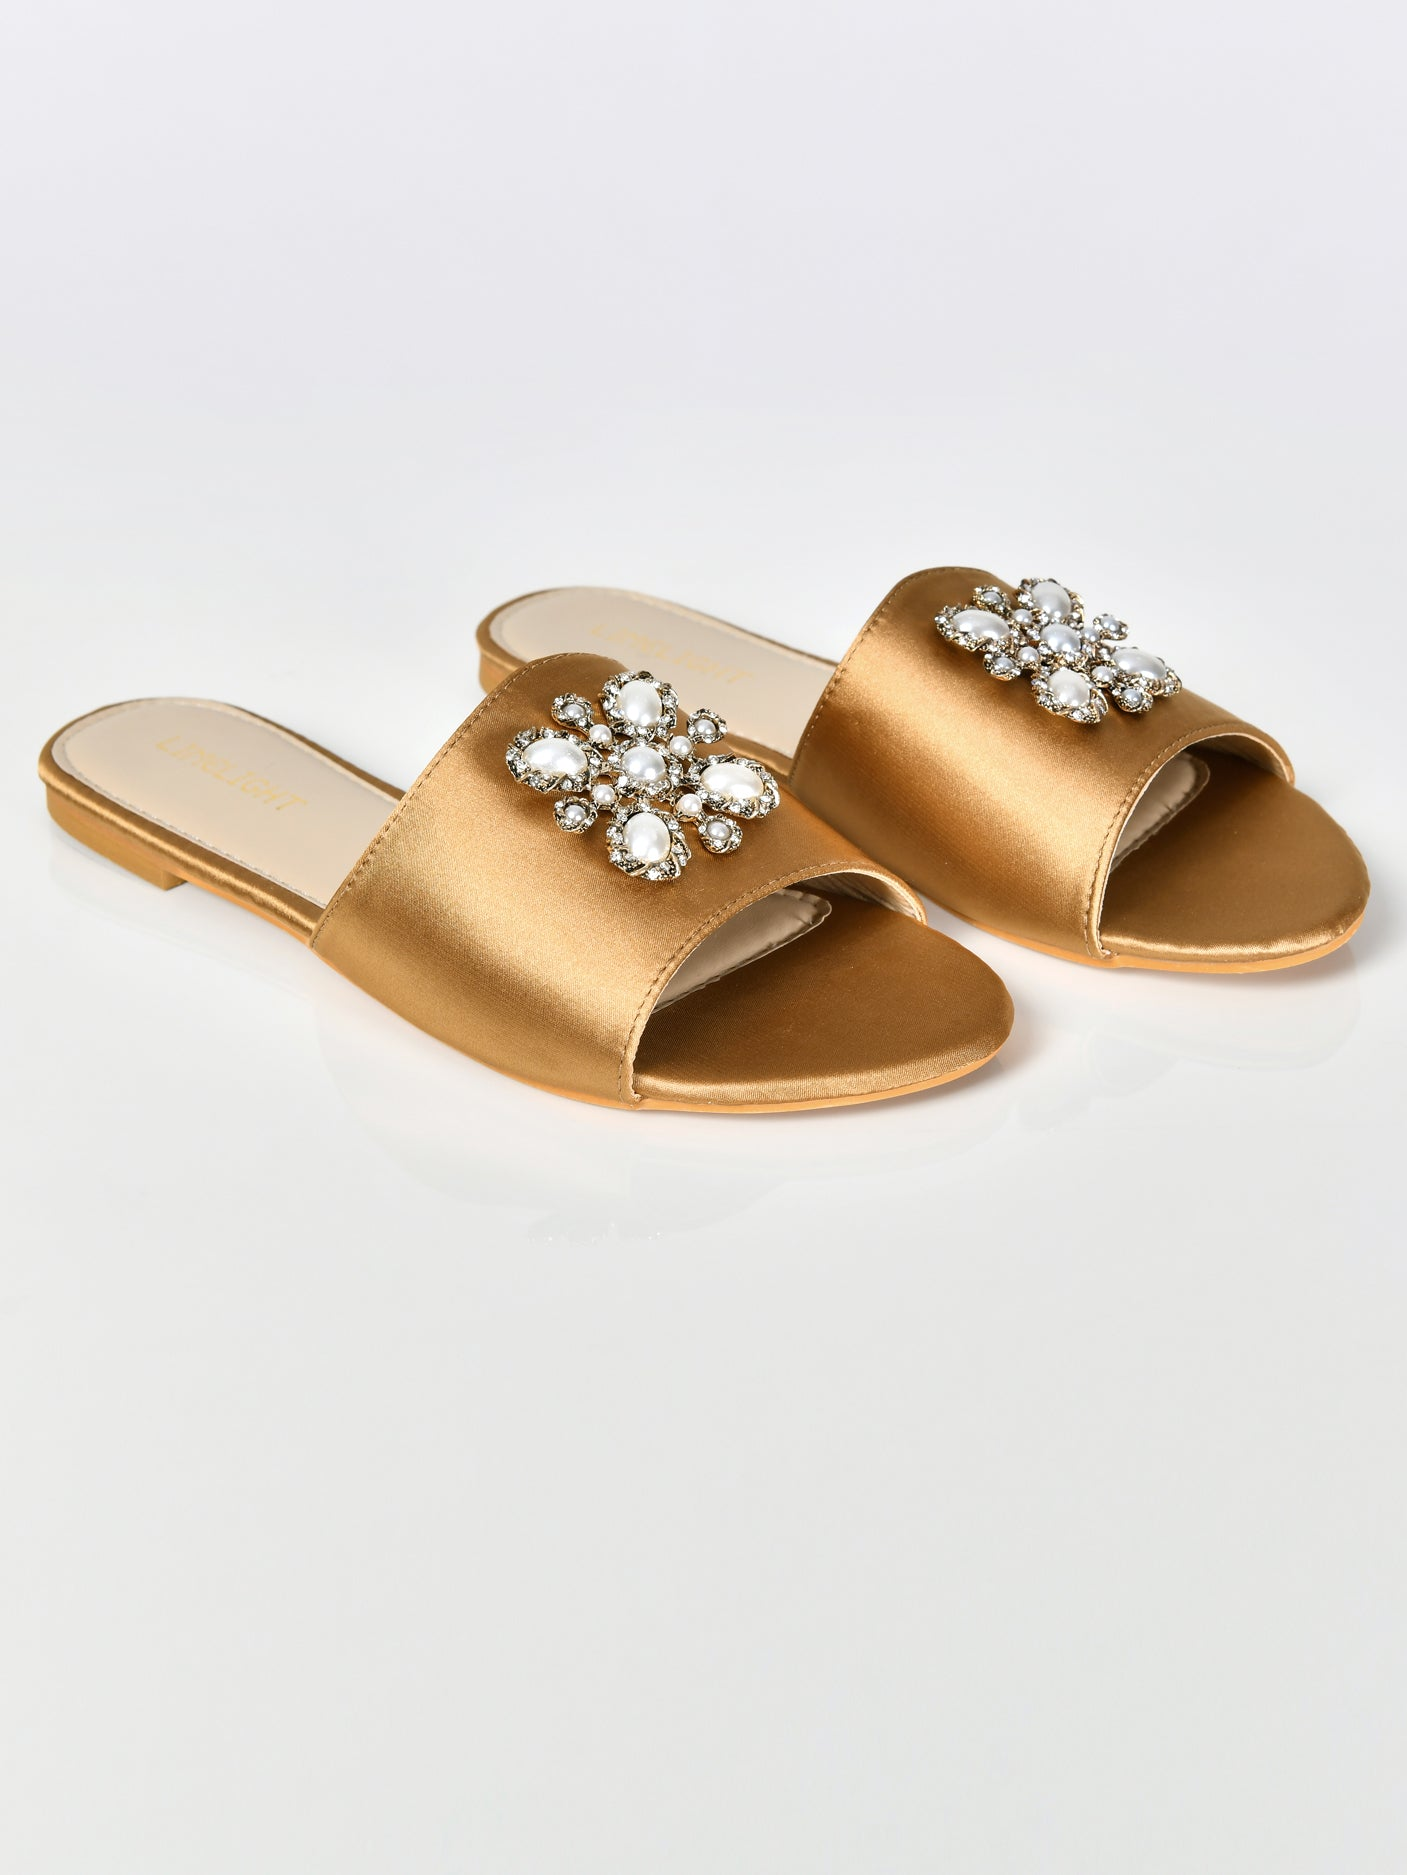 Pearl Satin Sandals-Gold